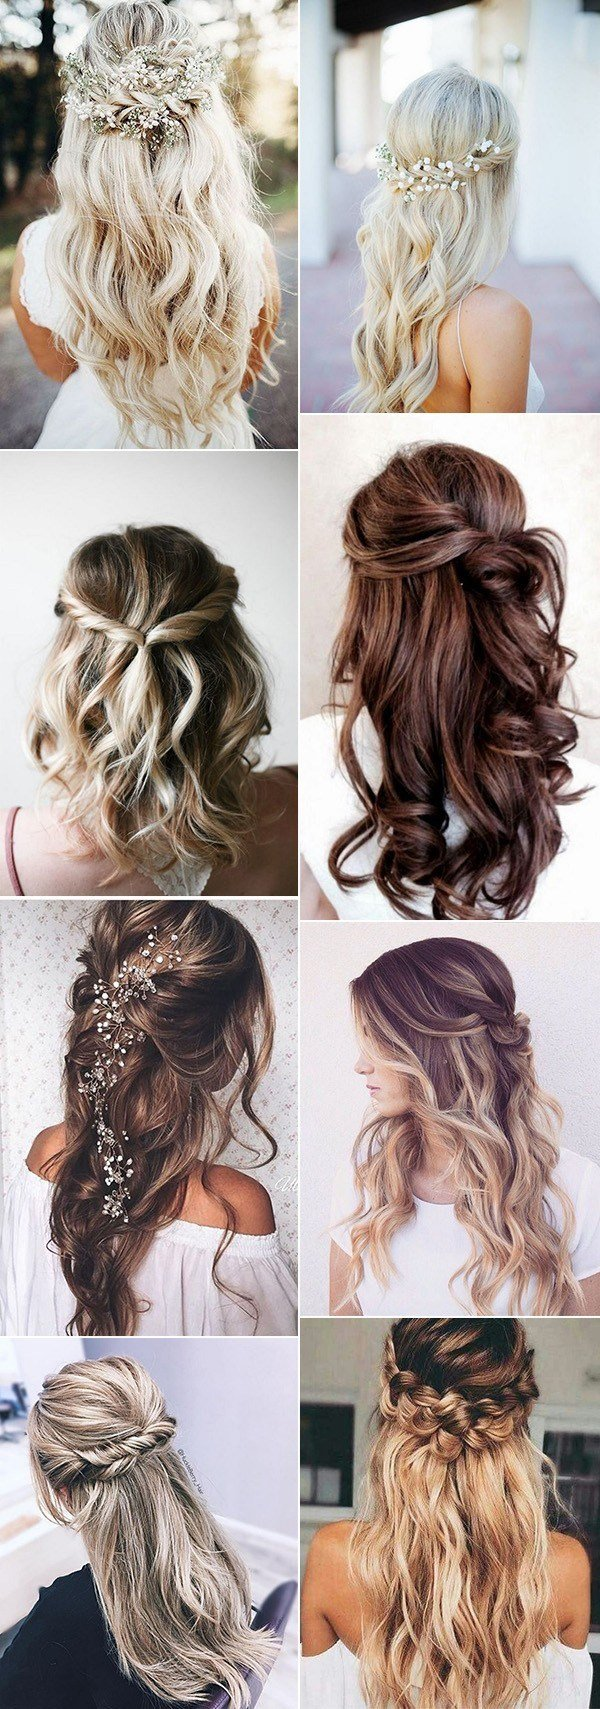 The Best Top 20 Half Up Half Down Wedding Hairstyles For 2018 2019 Pictures